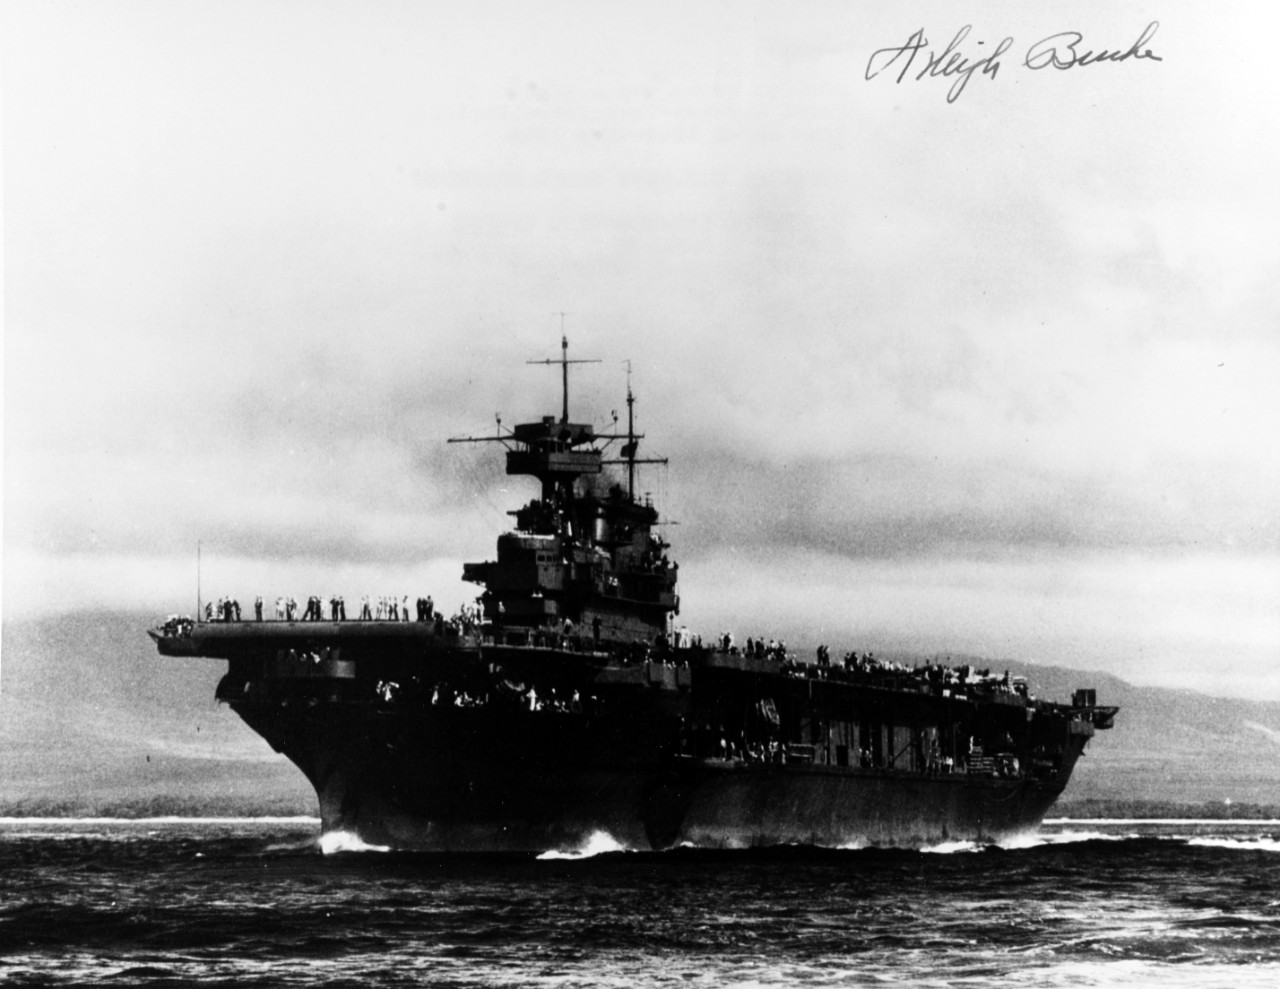 USS ENTERPRISE (CV-6) Admiral A. Burke was assigned to First Carrier Task Force Pacific, from March 1944 -- May 1945.